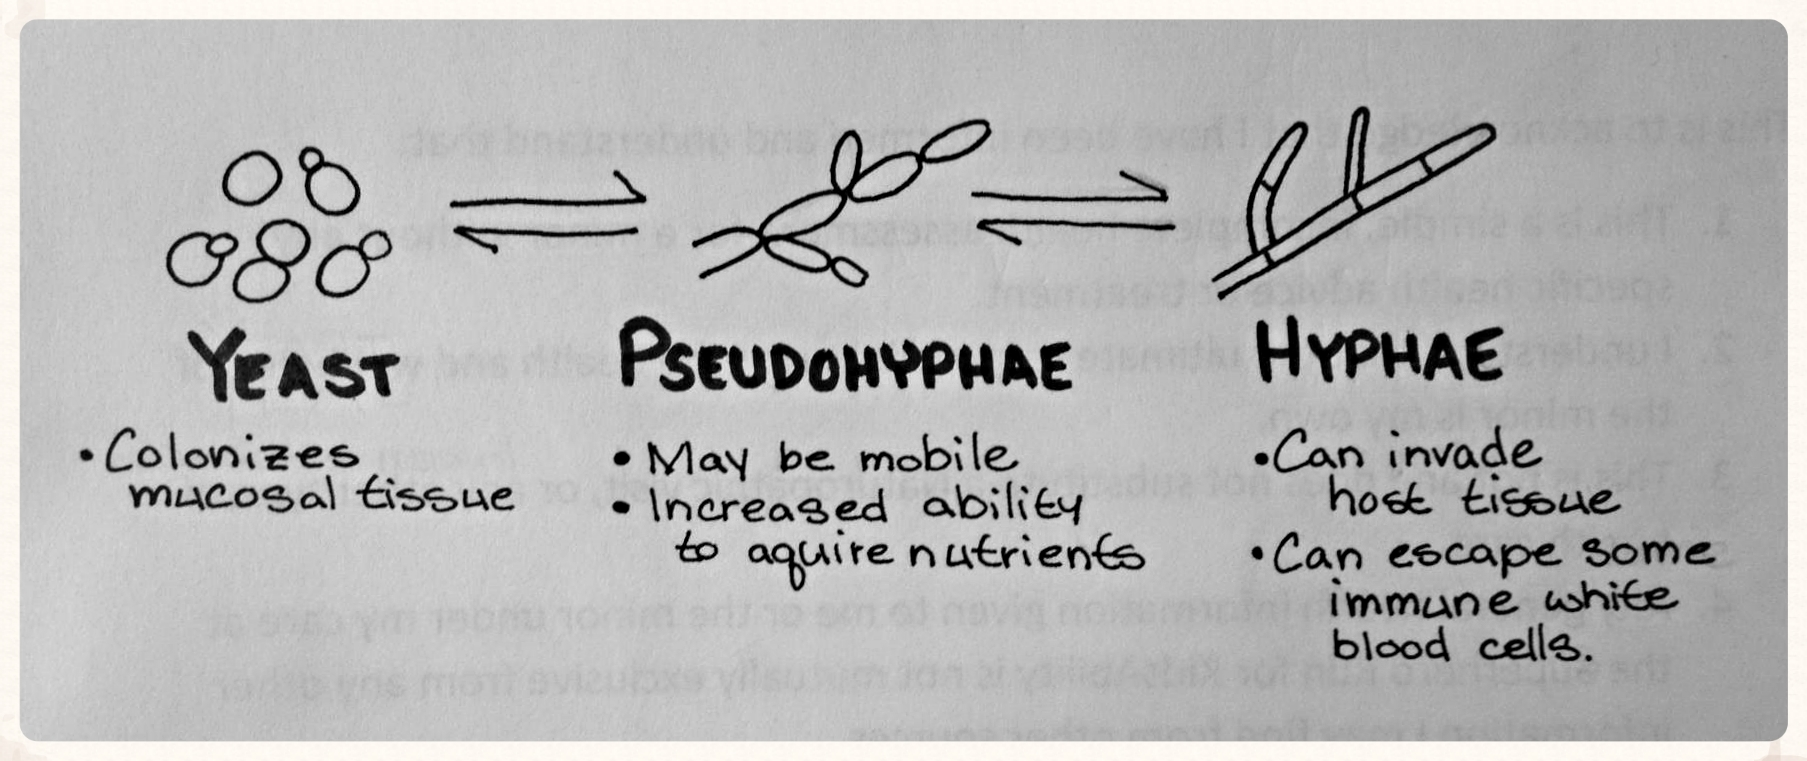 Candida can develop pseudohyphae and hyphae